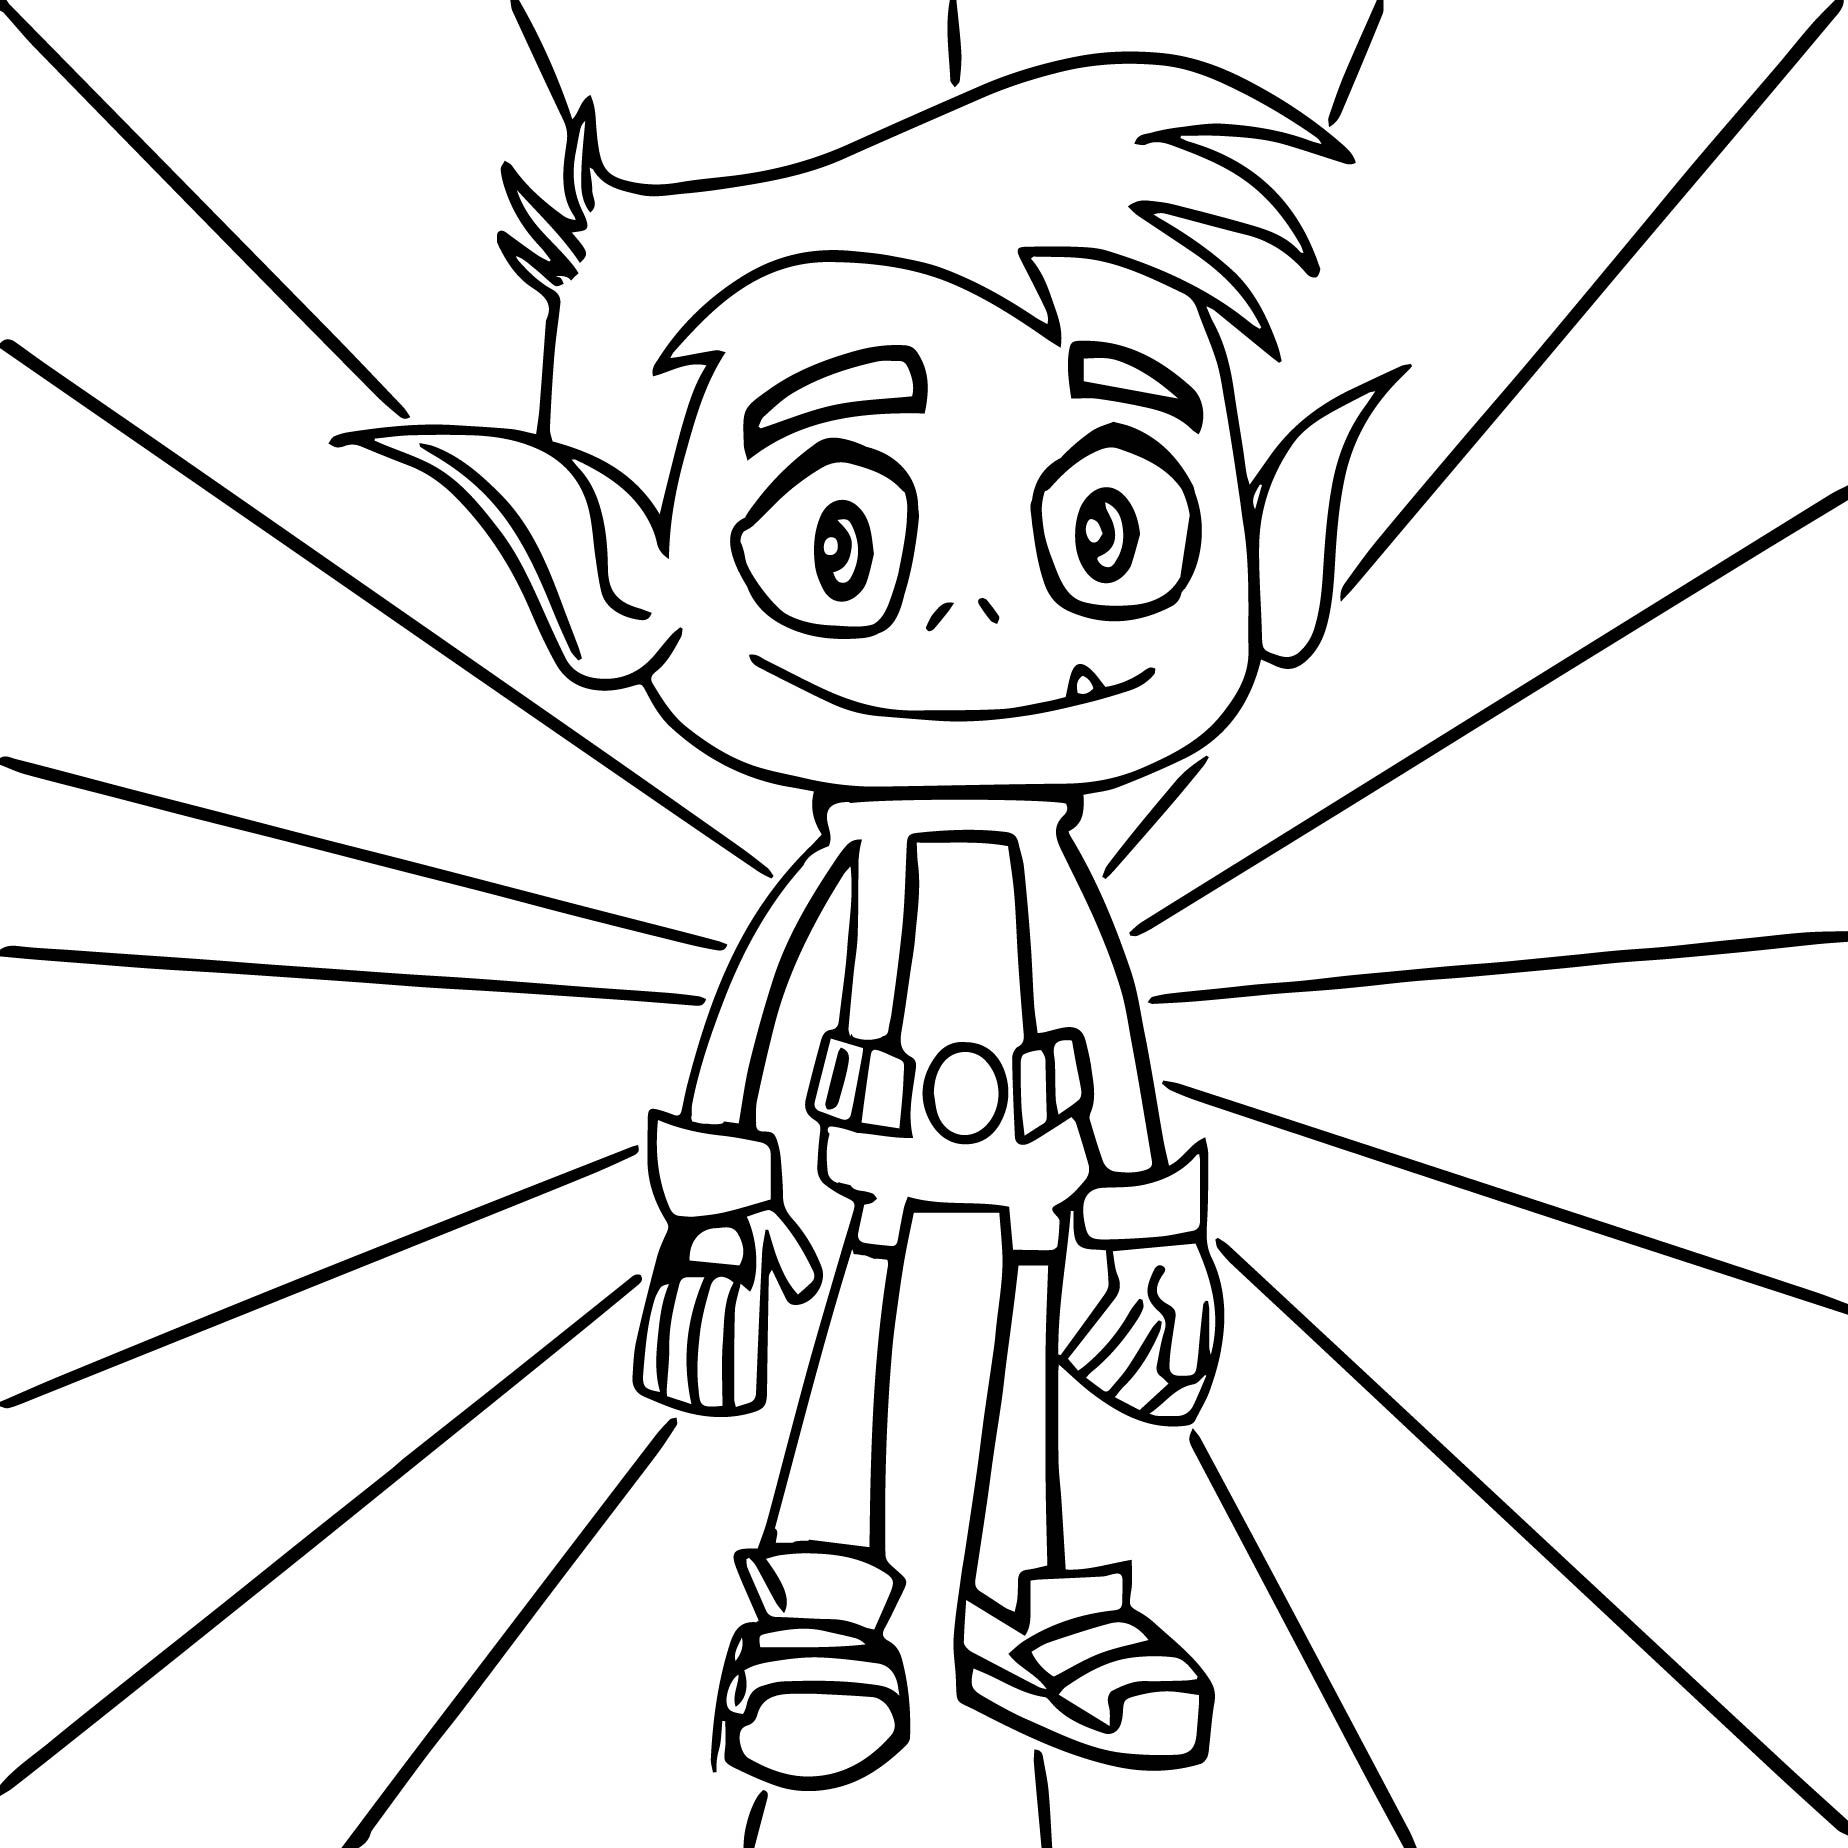 go sign coloring pages - photo#33